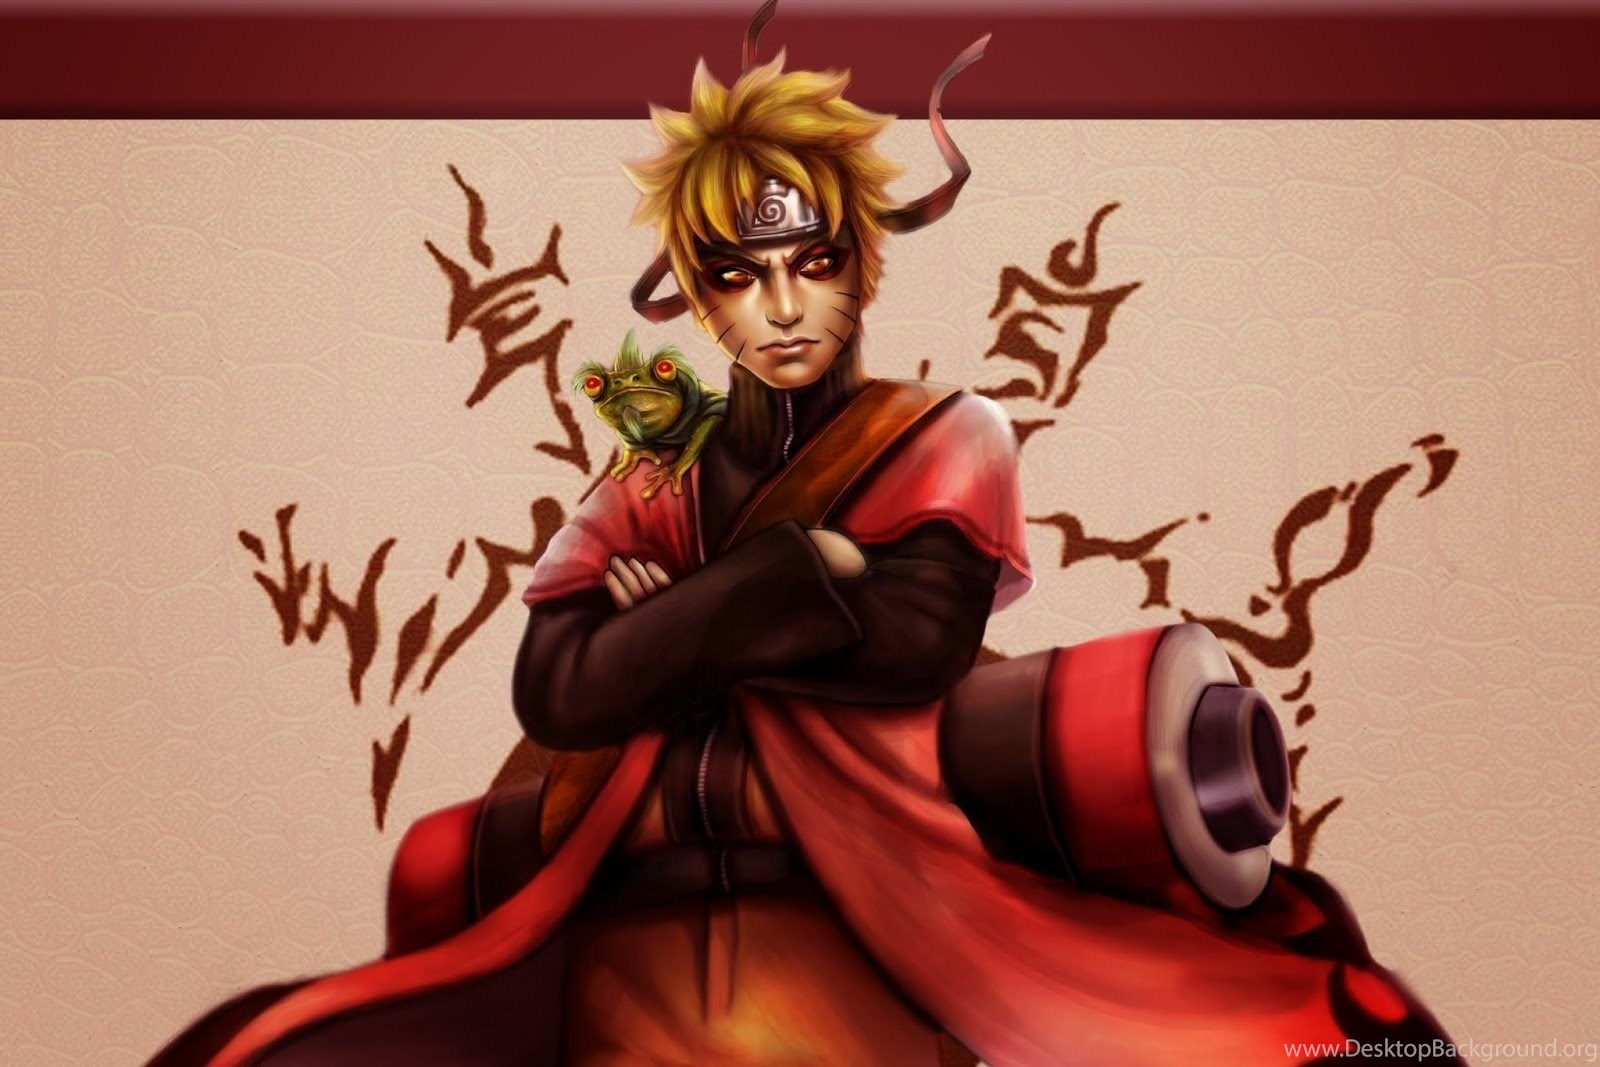 Wallpapers Naruto Shippuden Terbaru Desktop Background